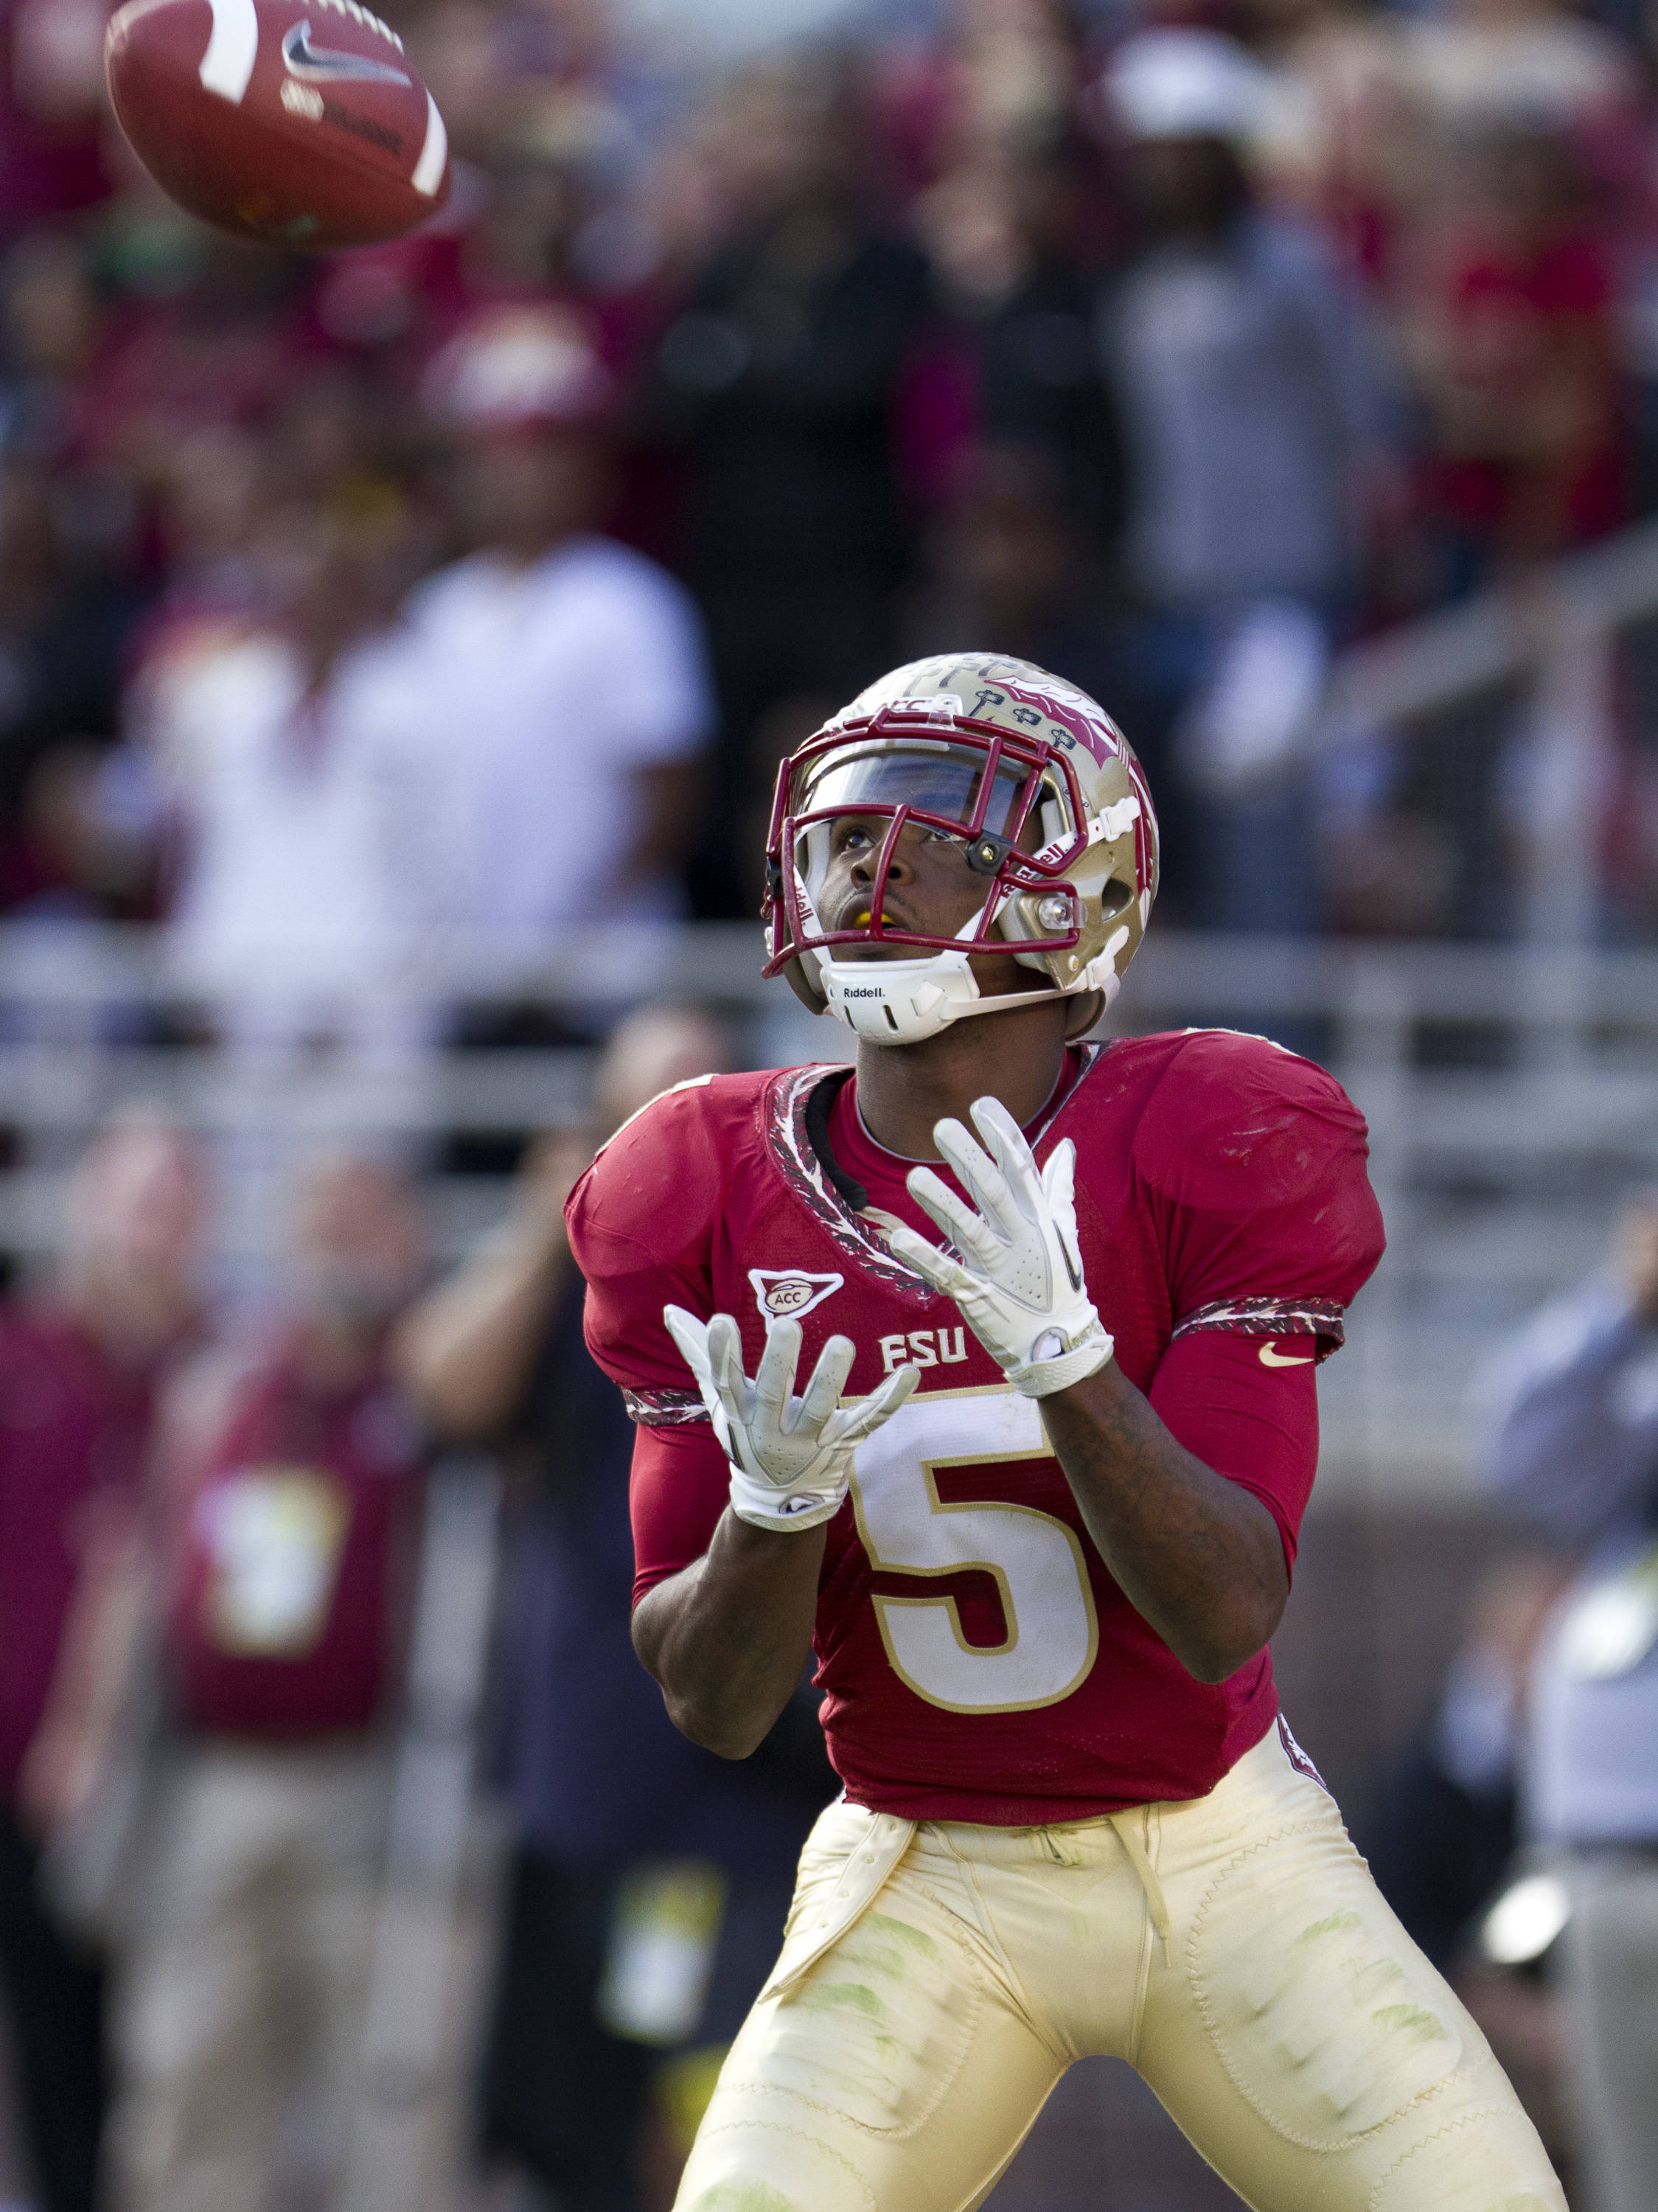 Greg Reid (5) returns a kickoff during the football game against Miami on November 12, 2011.